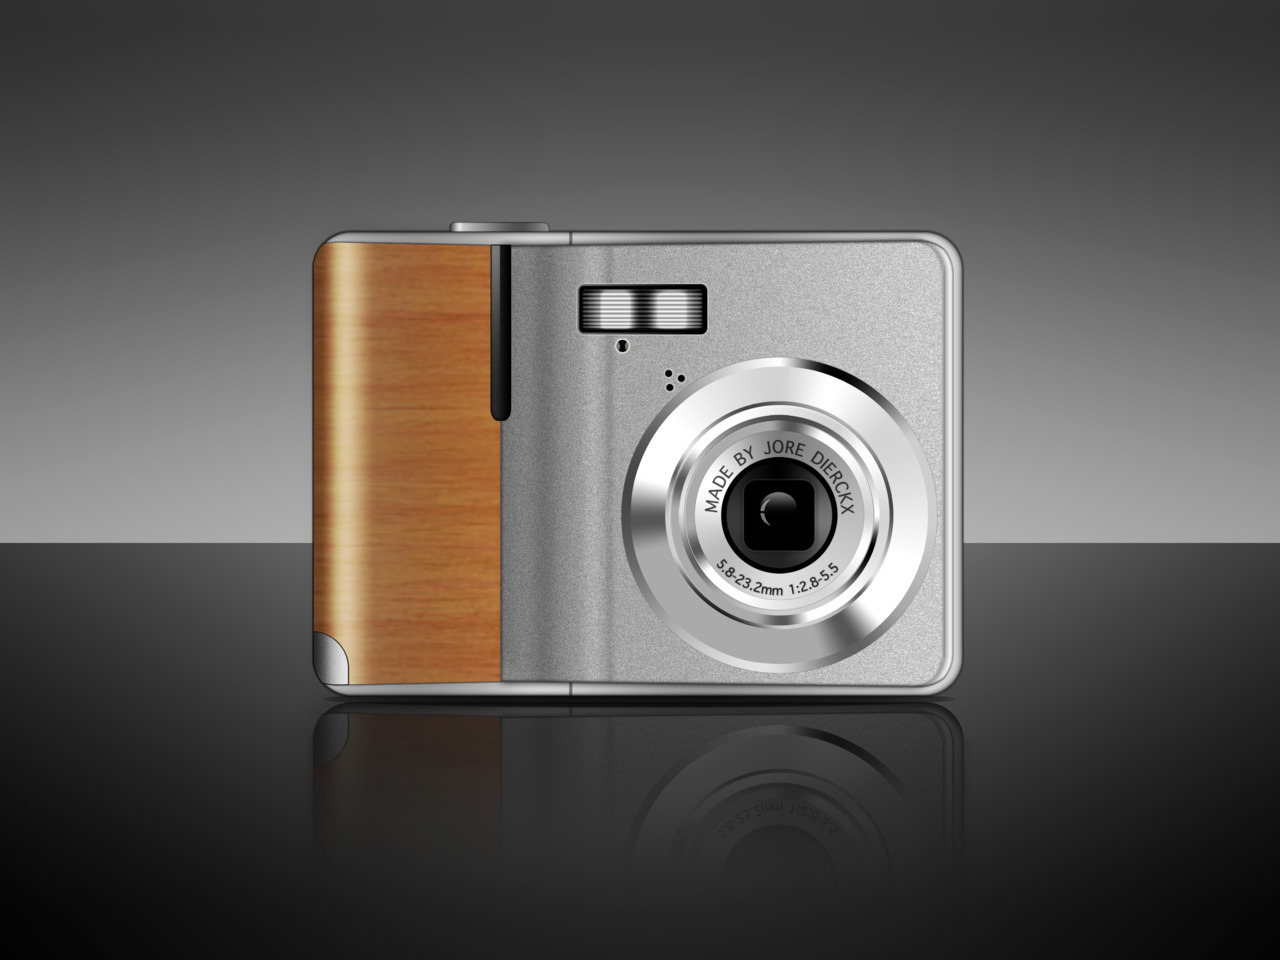 psdtuts+    Create a Digital Camera With Wooden Accents Using Photoshop  look at my version!!